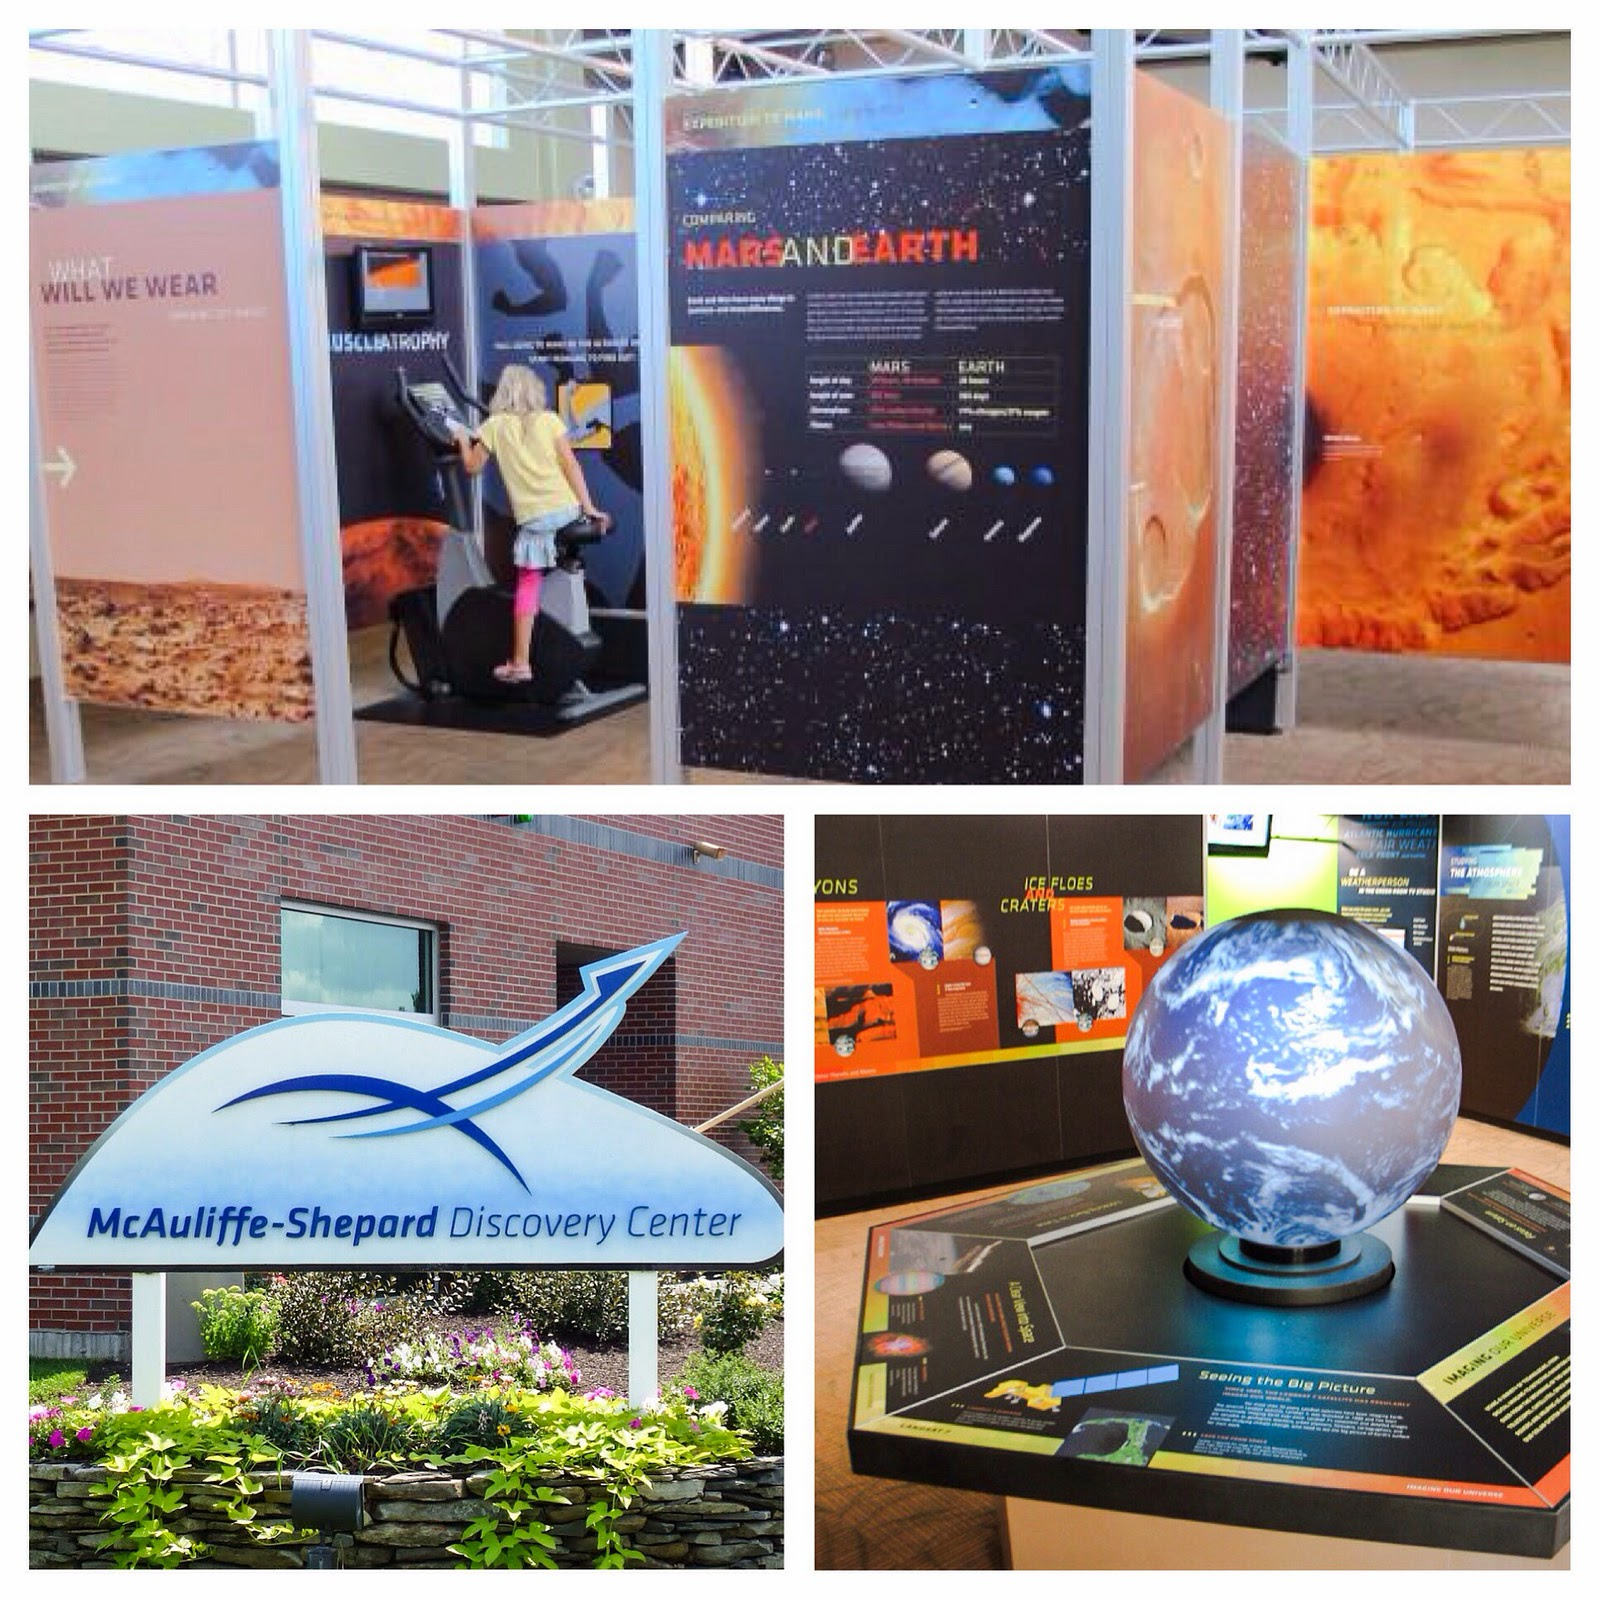 Last Chance to Use Discount Pass to McAuliffe-Shepard Discovery Center